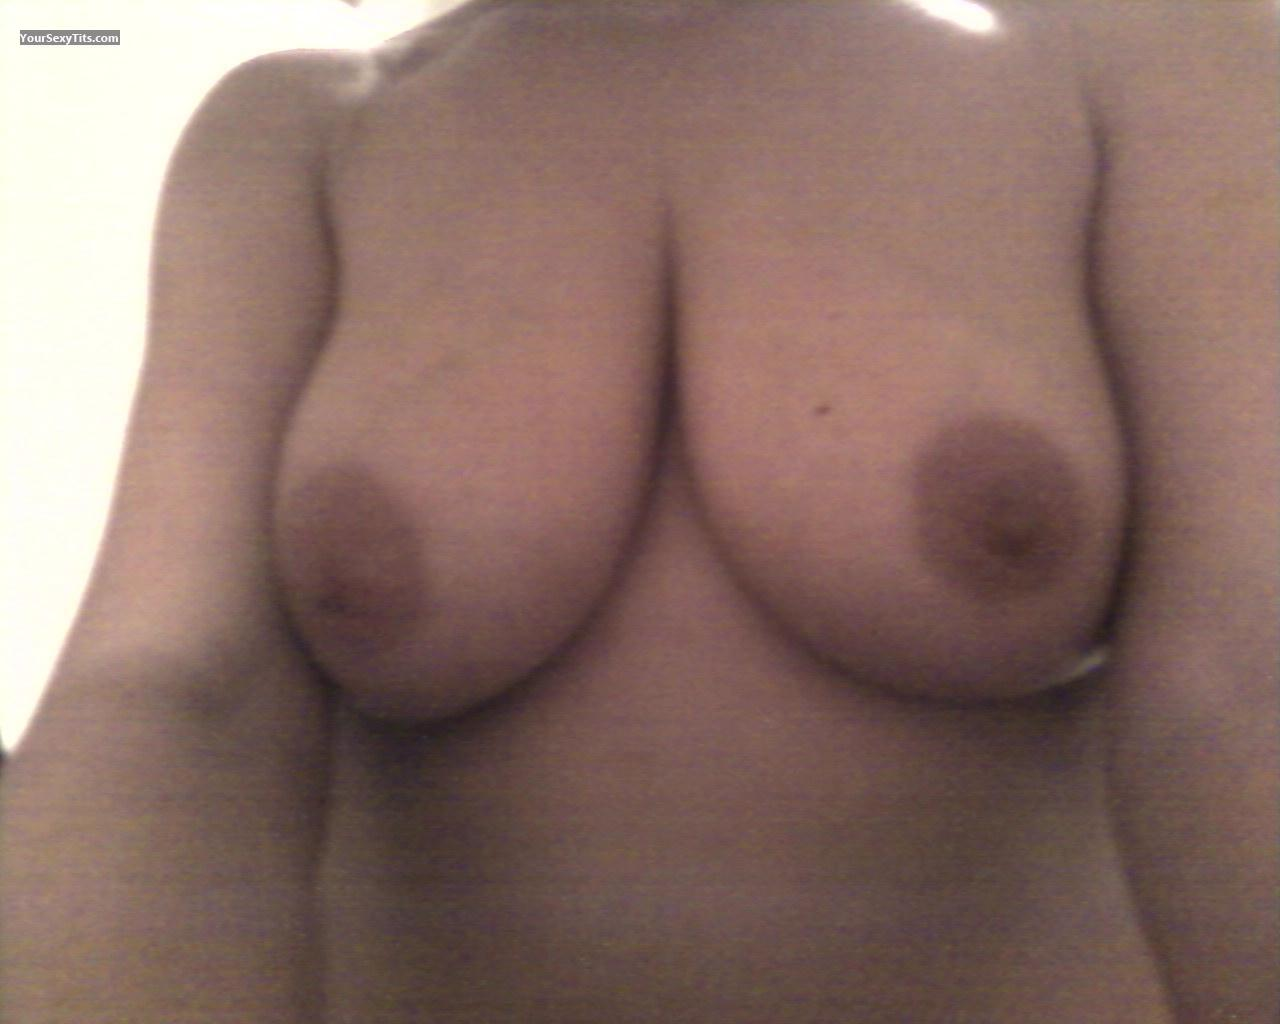 Tit Flash: Big Tits - Suz from United Kingdom